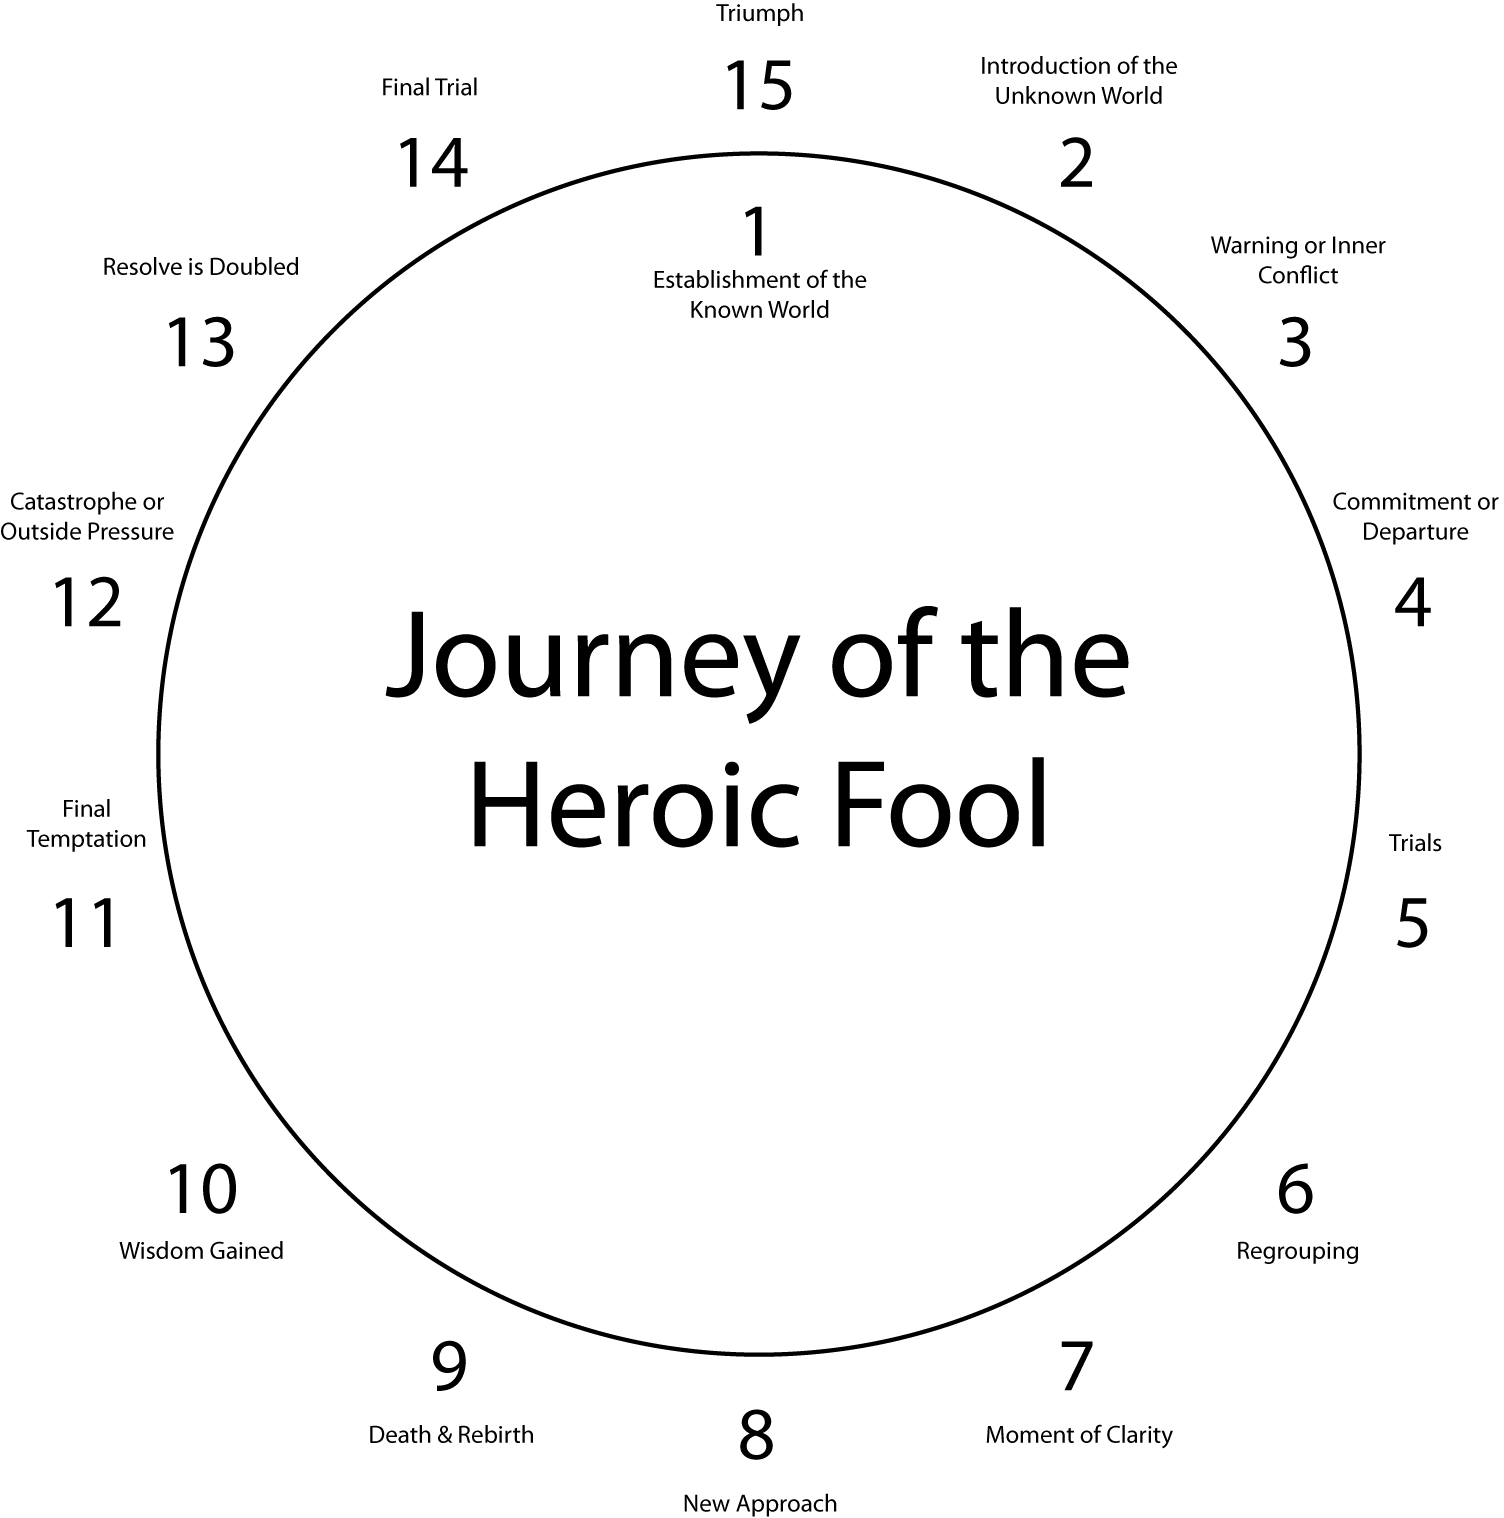 Journey of the Heroic Fool